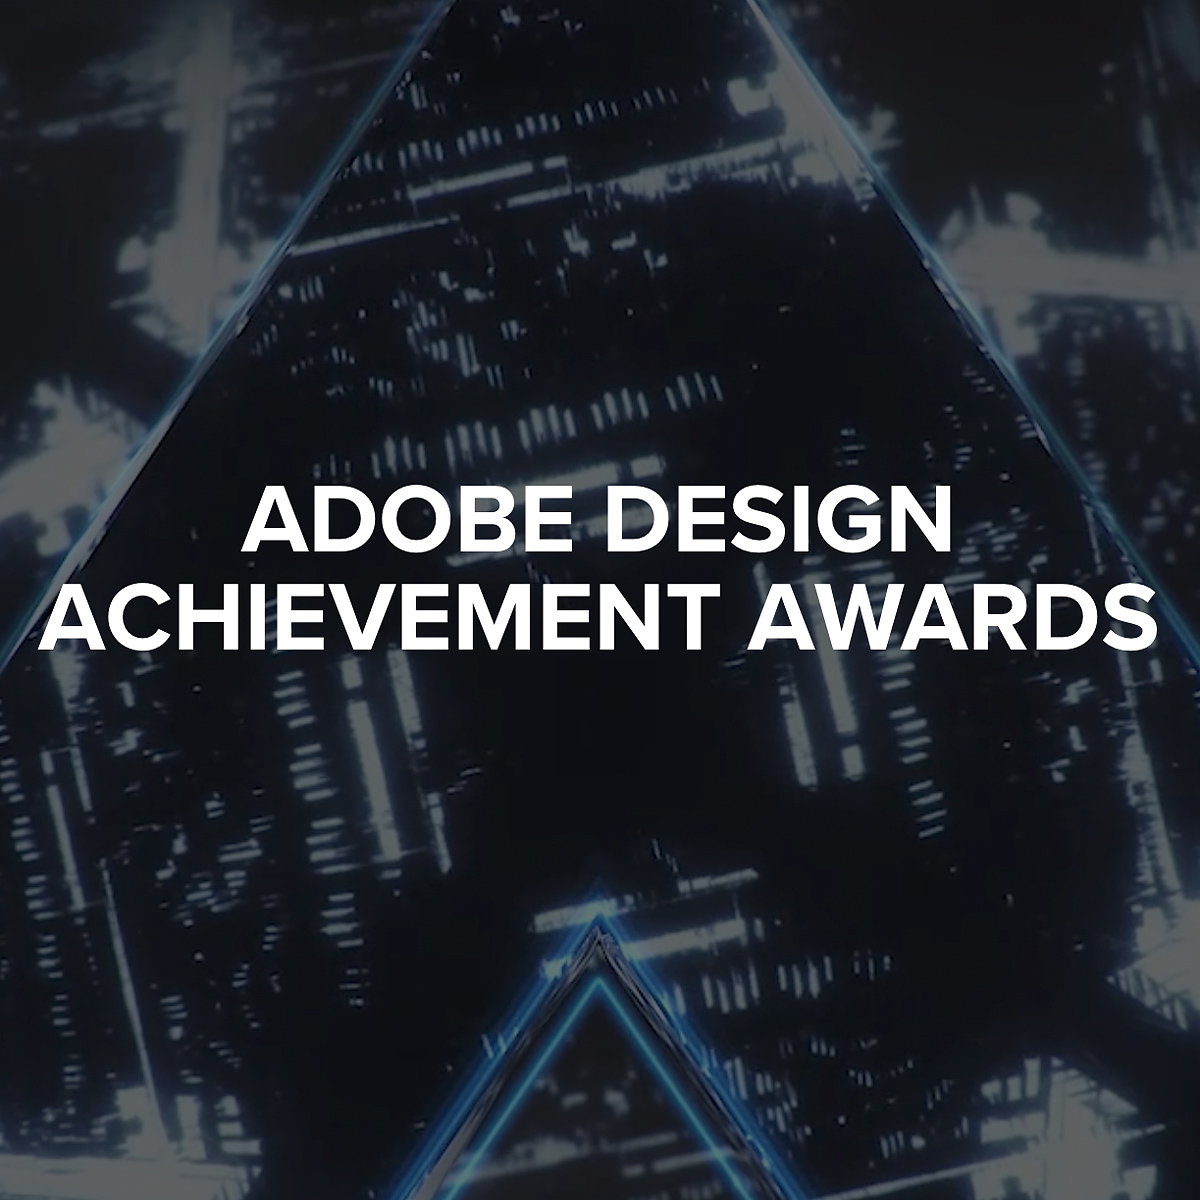 2018 Adobe Design Achievement Awards